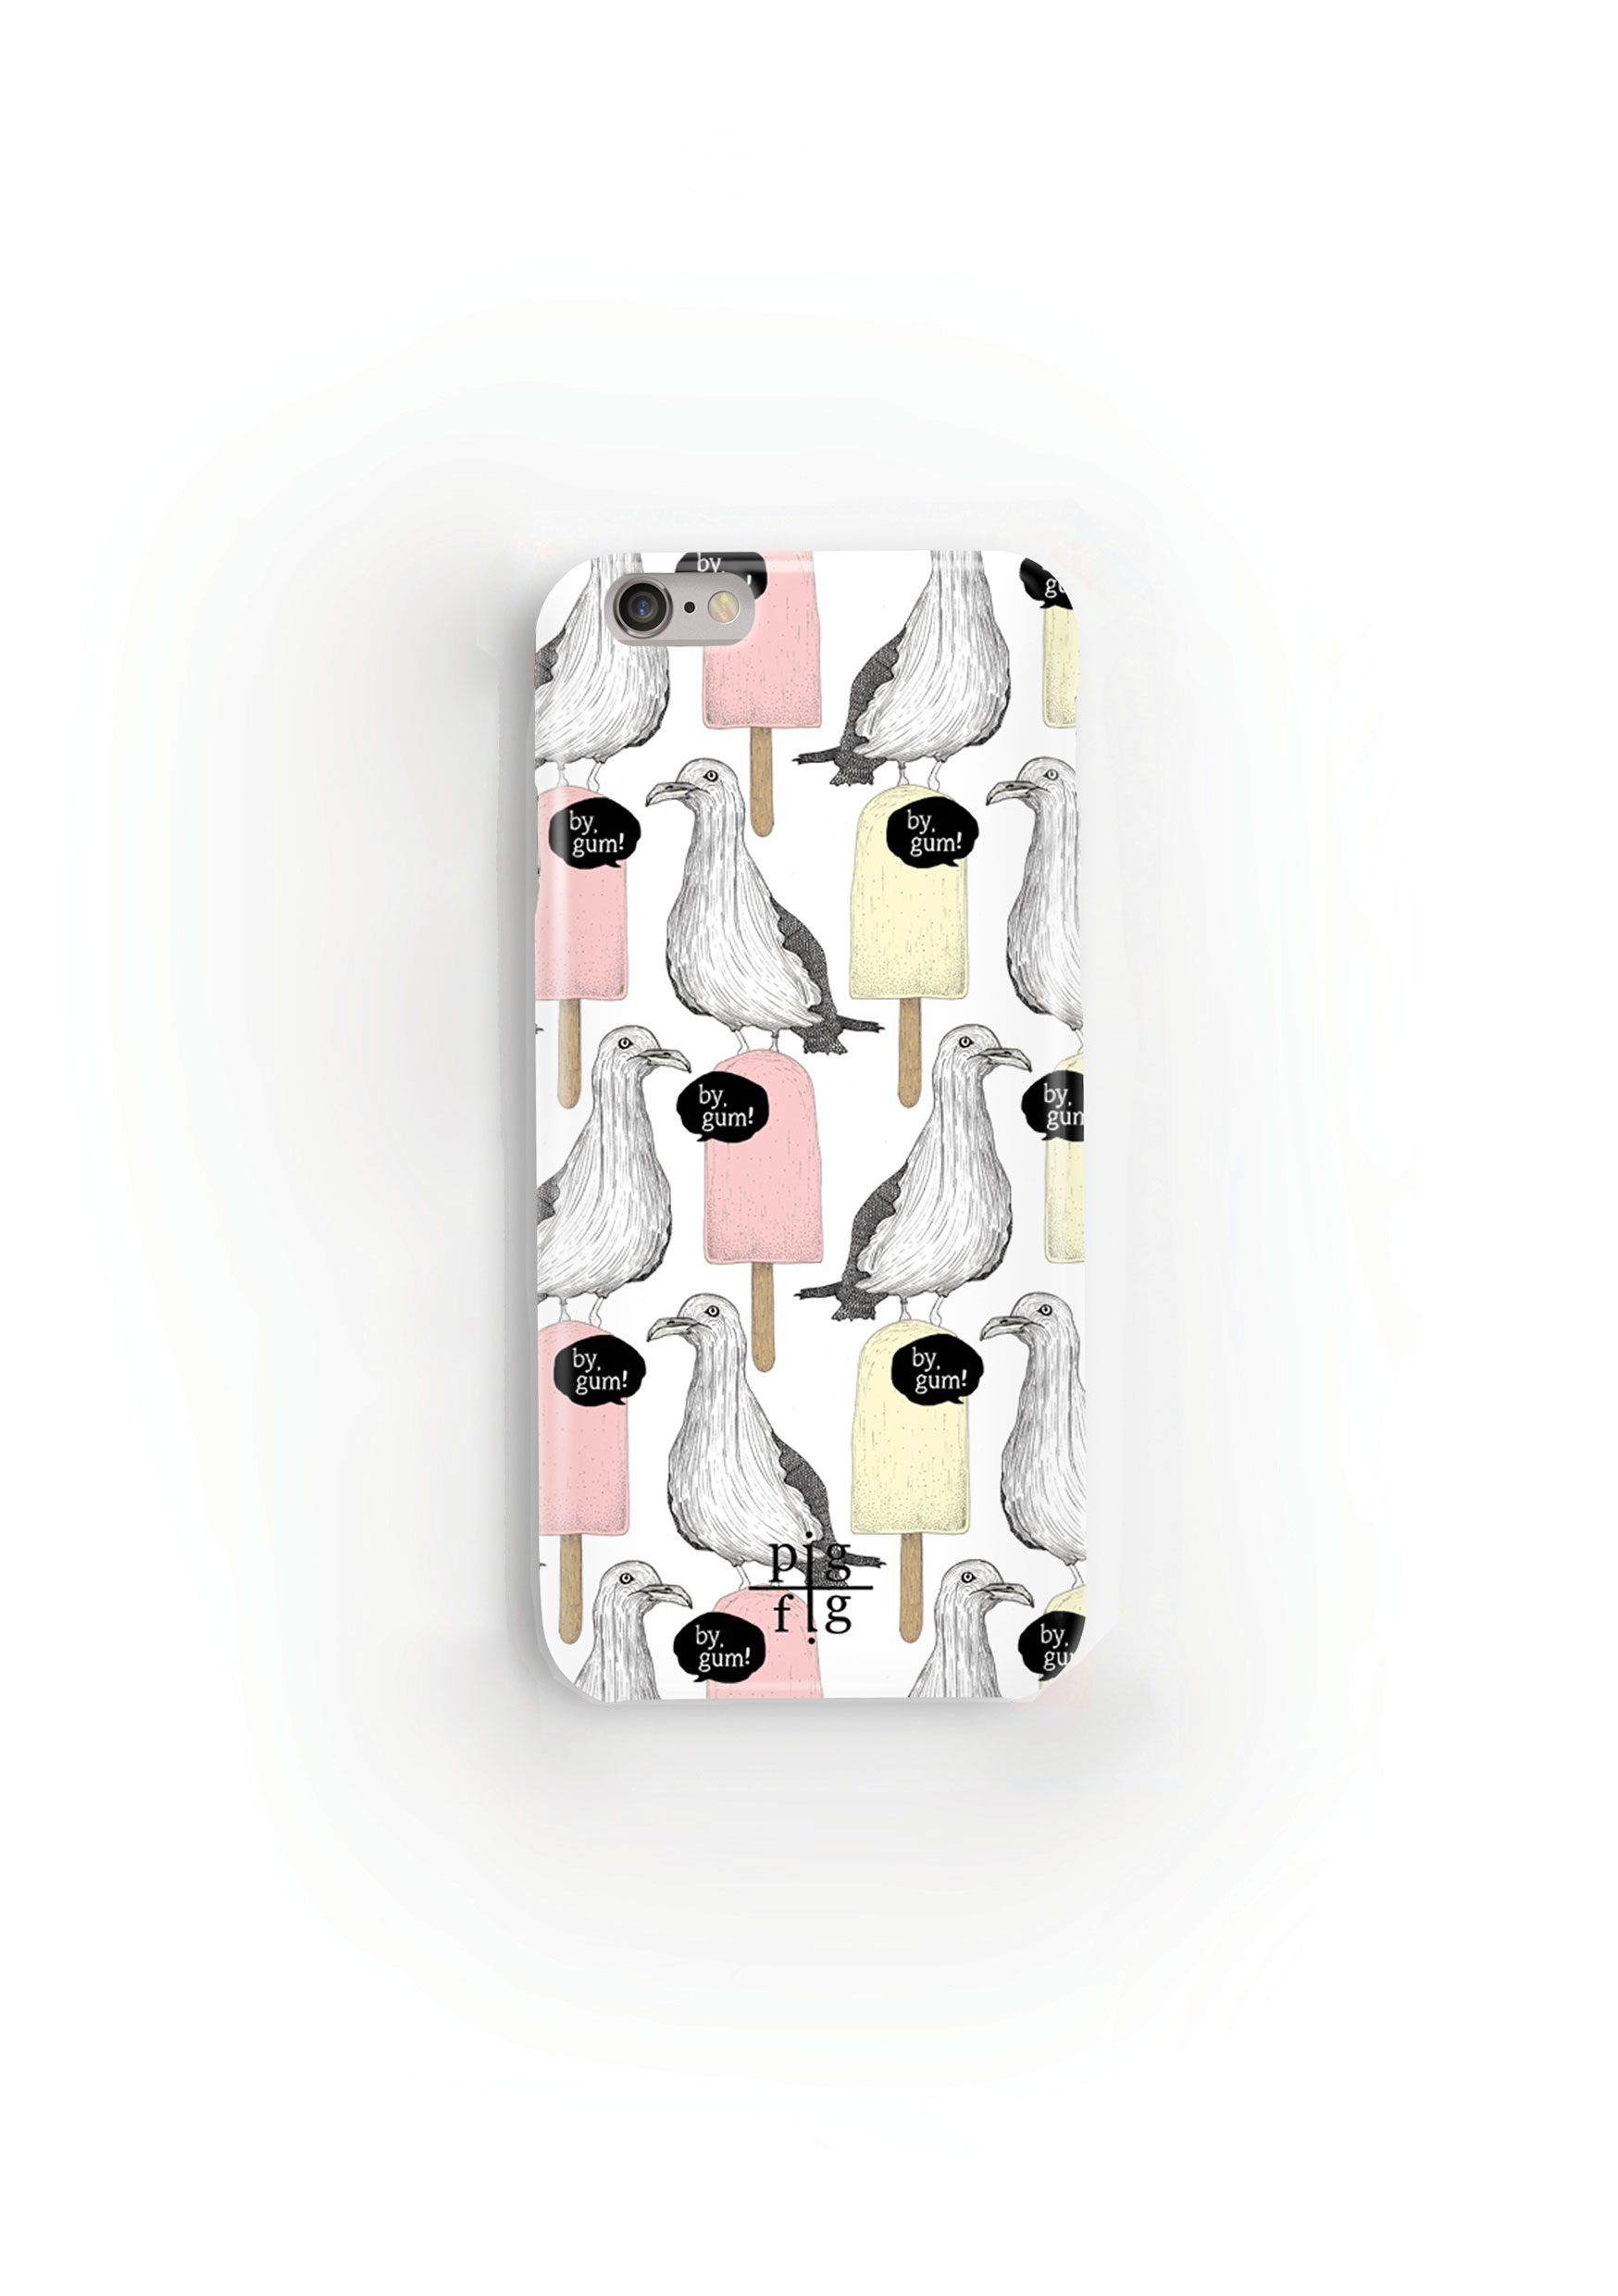 Seagull & Ice Lolly Rhubarb Custard Phone Case